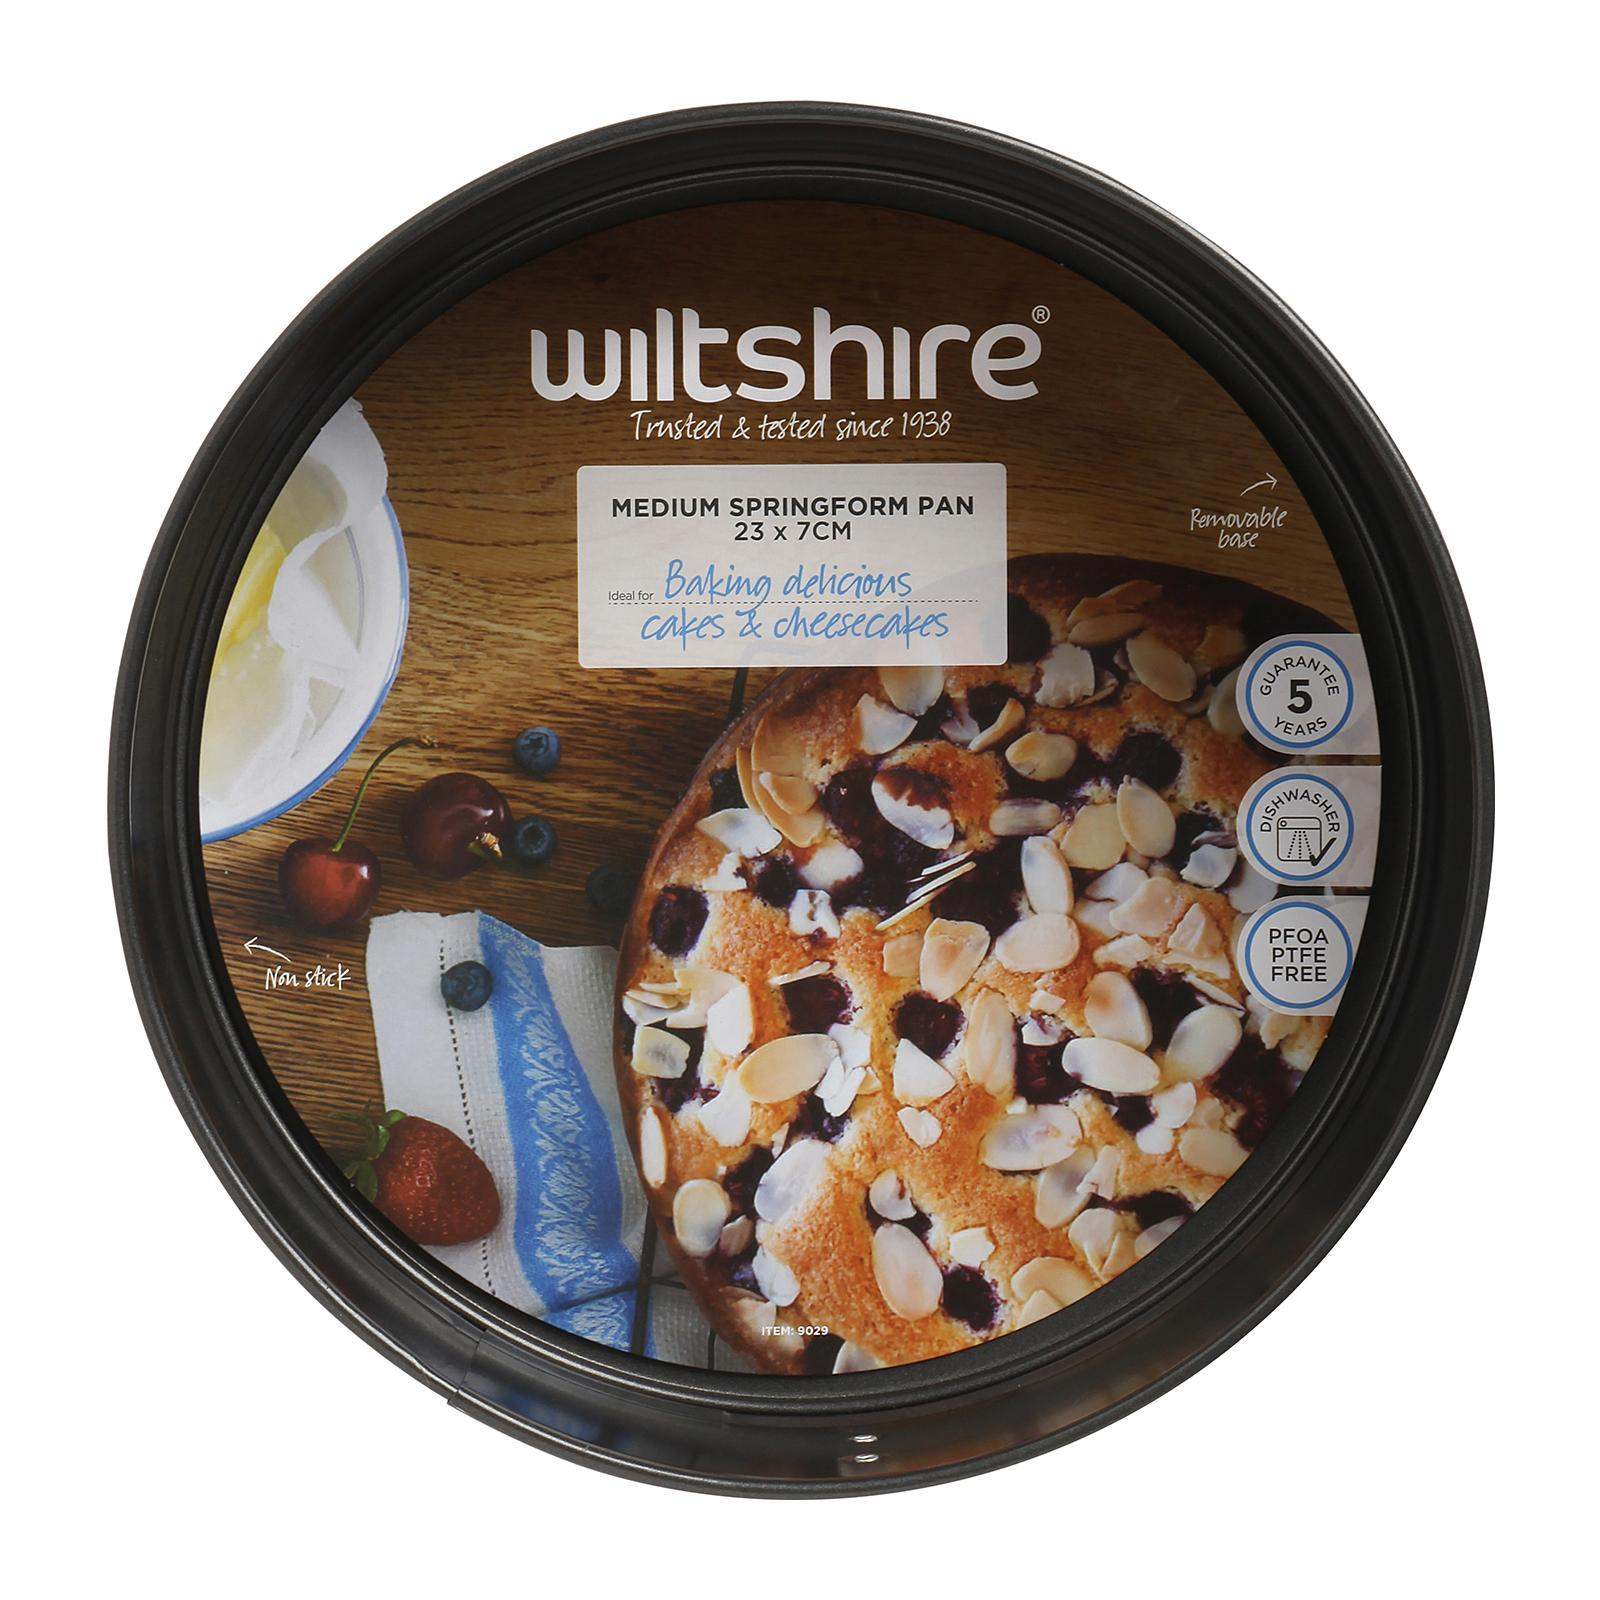 Wiltshire Easybake Medium Springform Cake Pan from RedMart